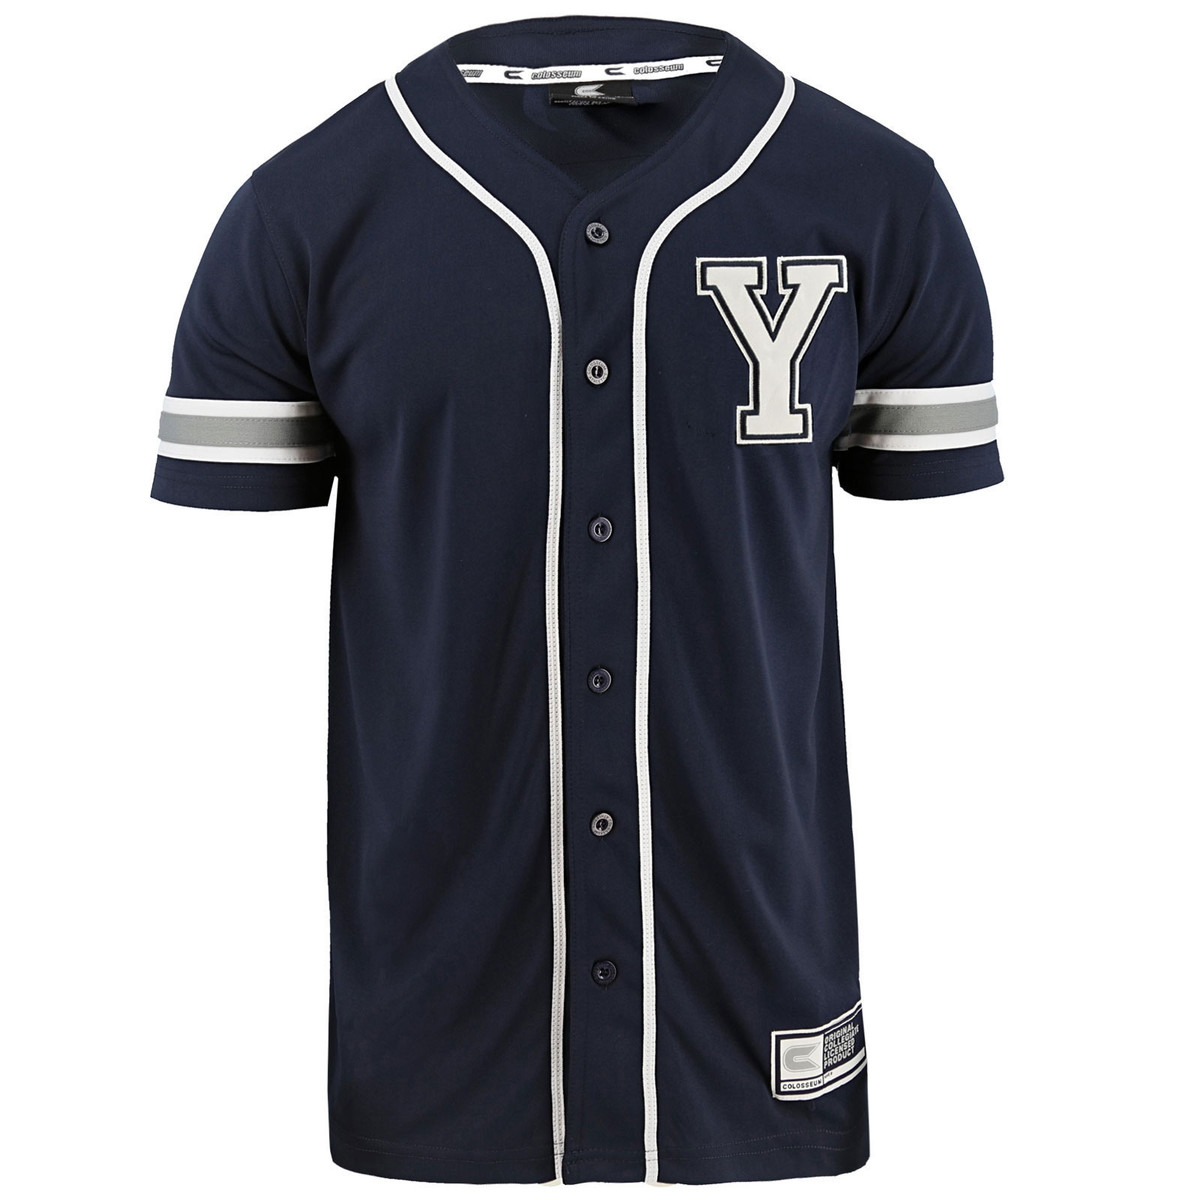 super popular 0a14d 621c1 Y Cougars BYU Baseball Jersey - Colosseum